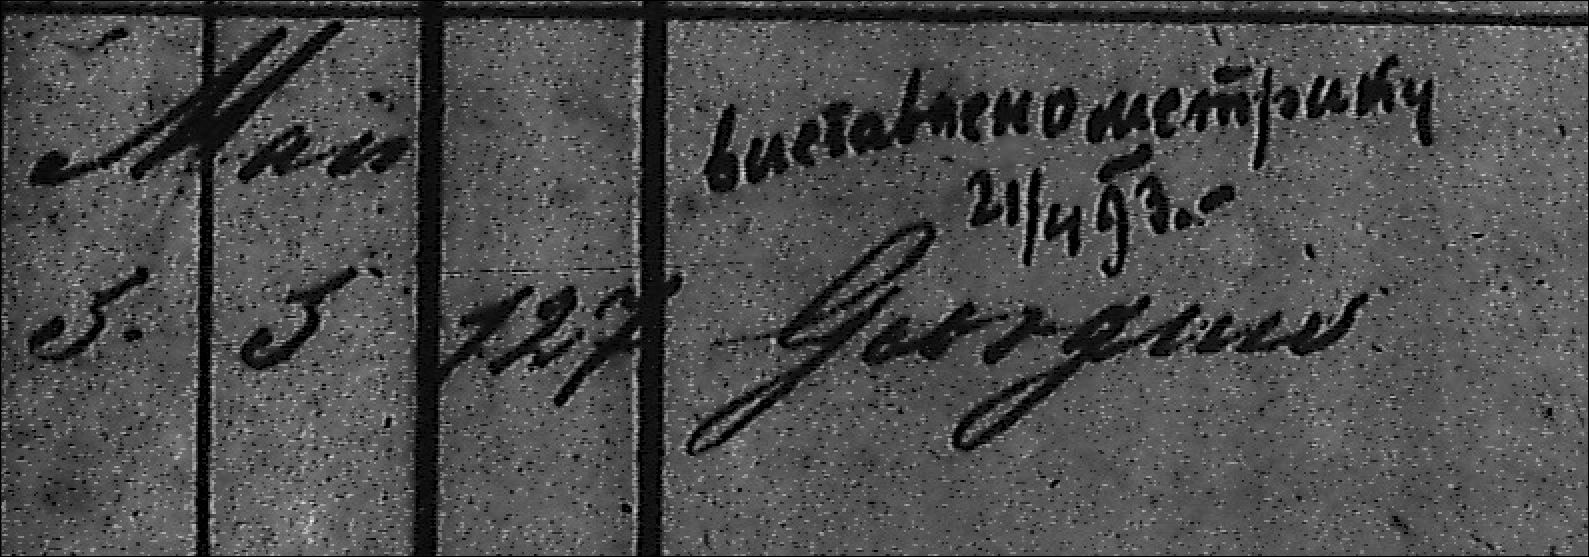 Giorgius Fedyna closeup of name, unknown words and date.JPG